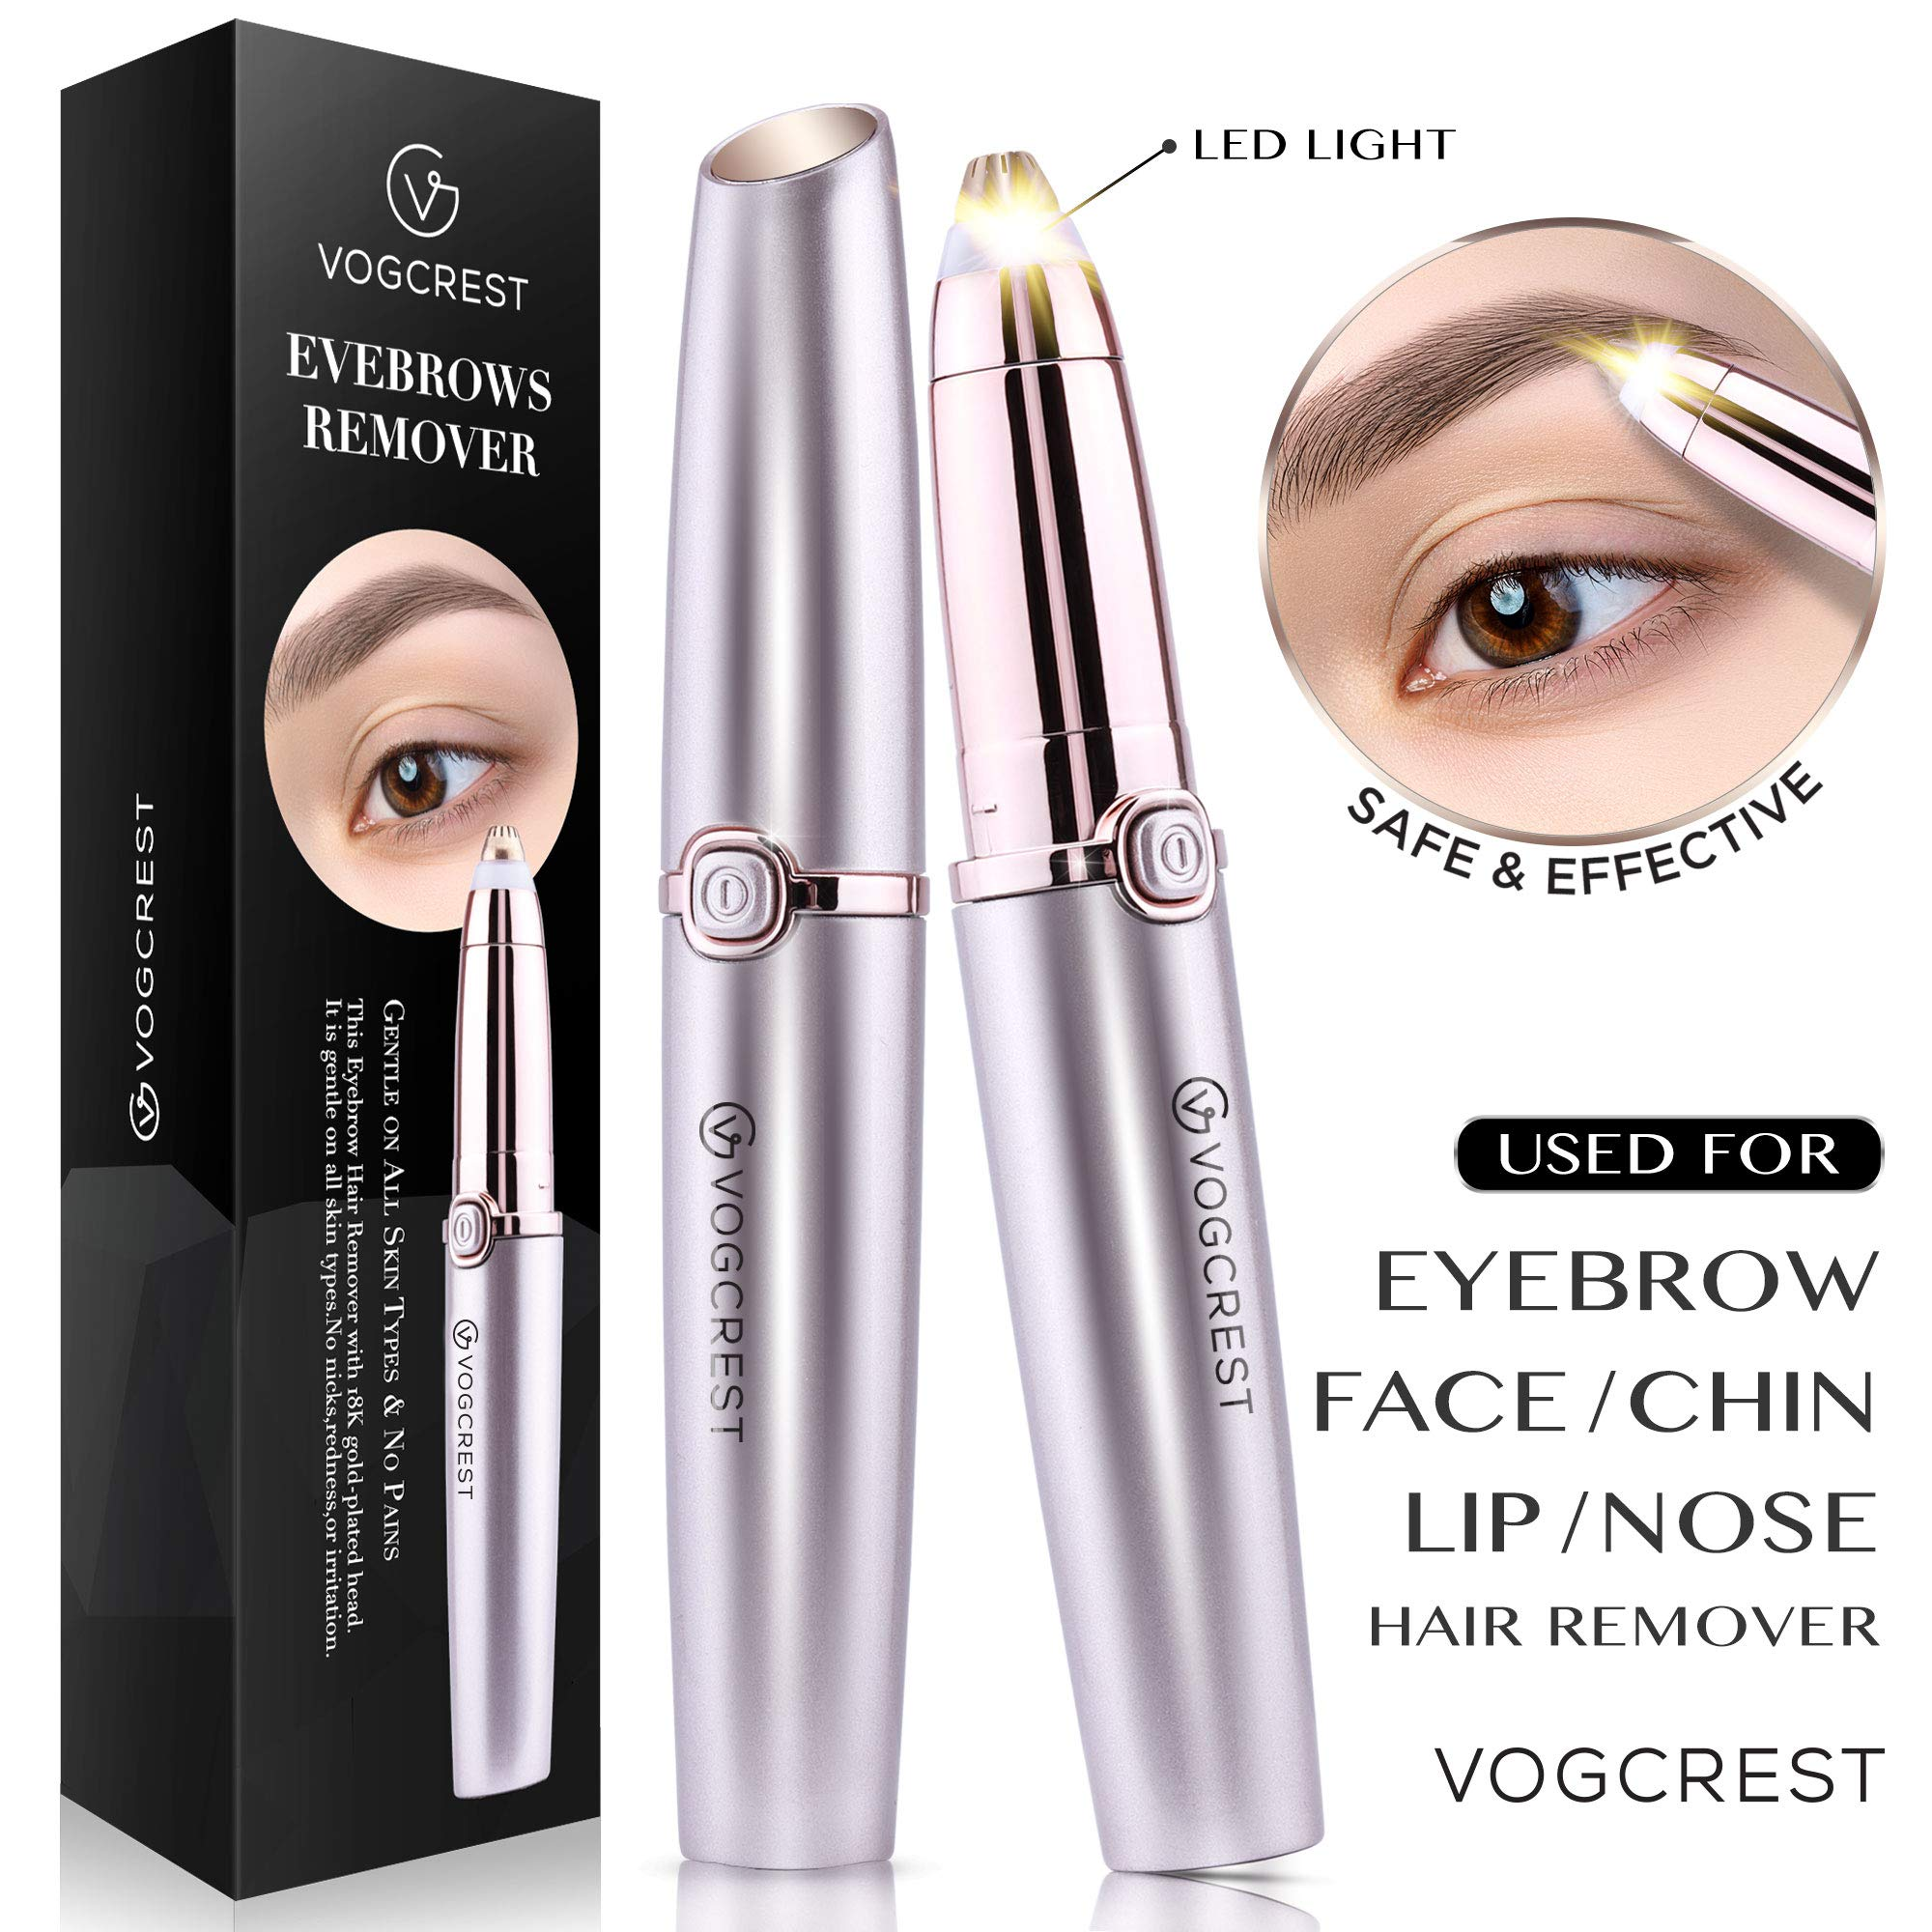 Eyebrow Hair Remover, Vogcrest Electric Painless Eyebrow Trimmer Epilator for Women, Portable Eyebrow Hair Removal Razor with Light - Rose Gold